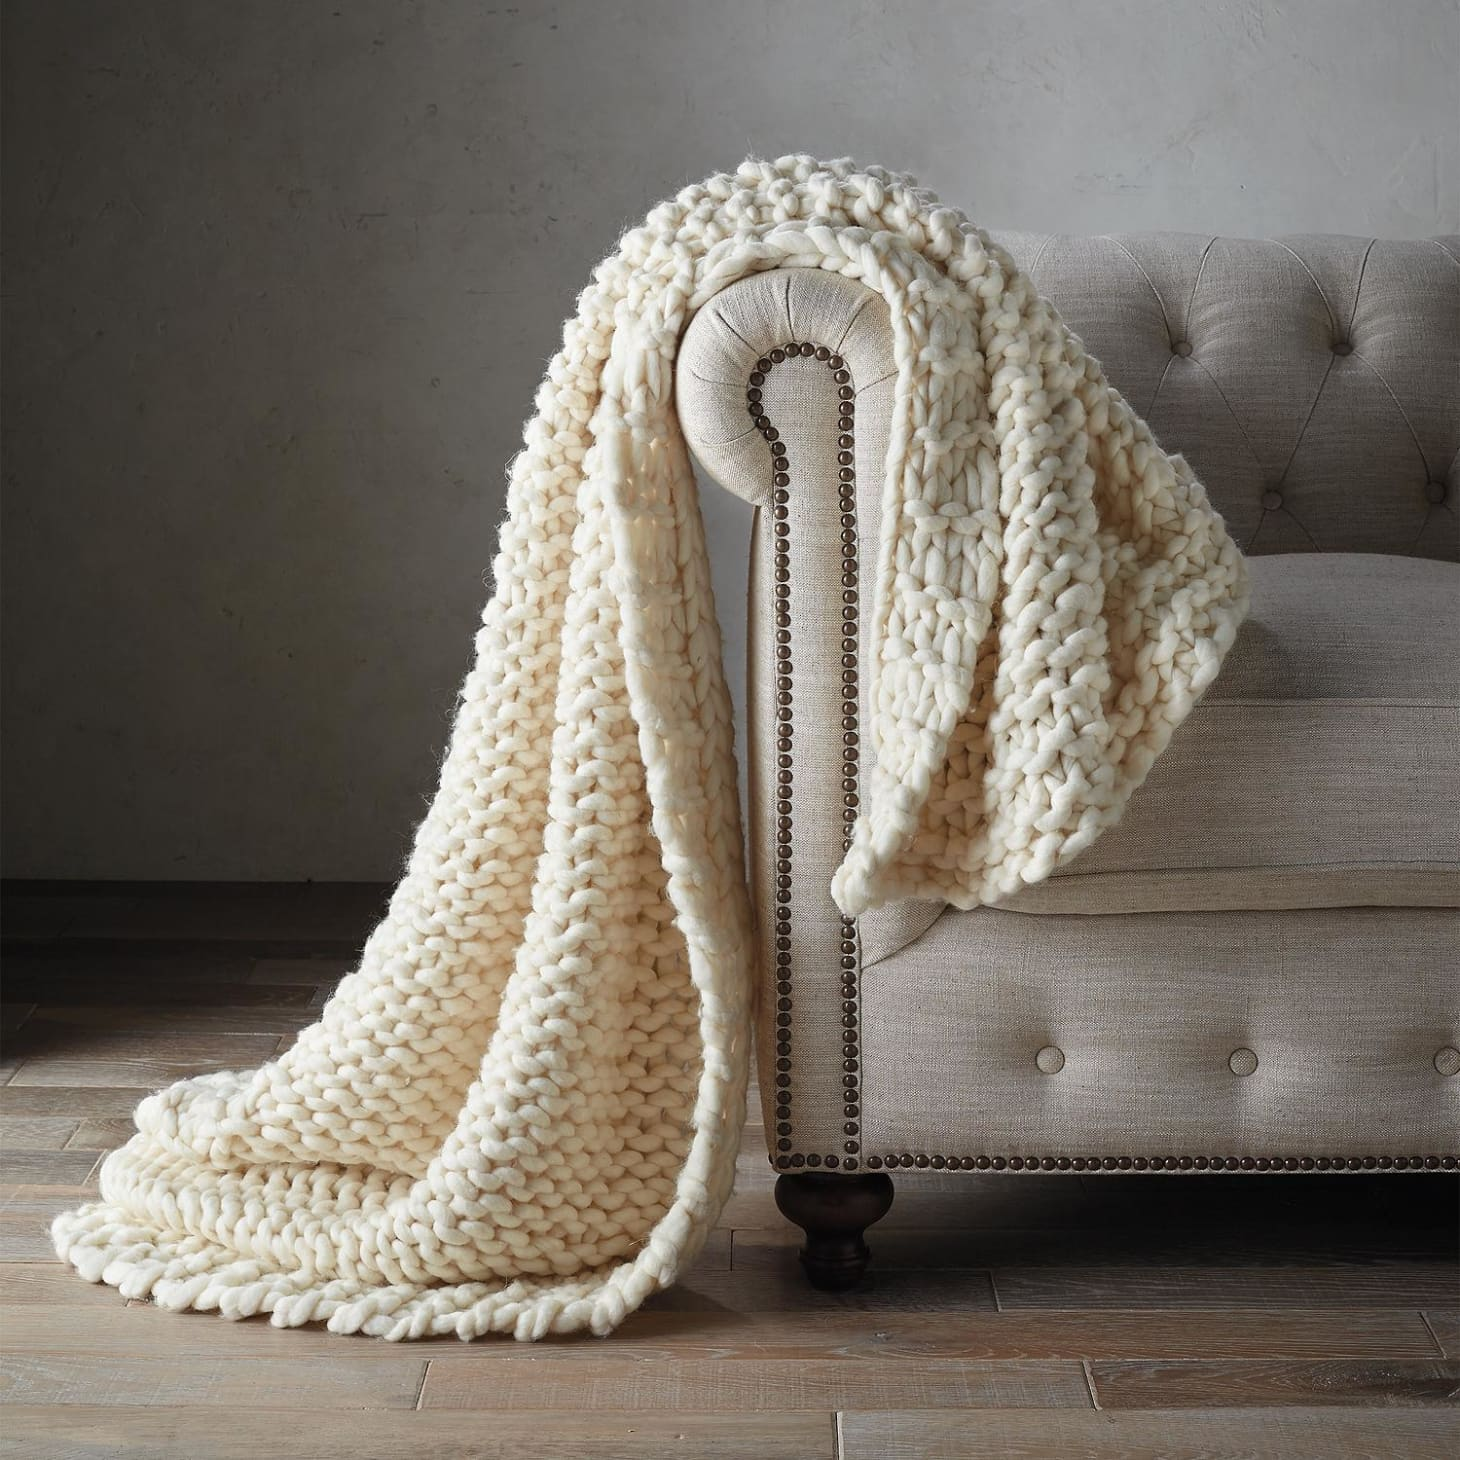 Where to Buy Chunky Knit Blanket - Best Deals | Apartment Therapy